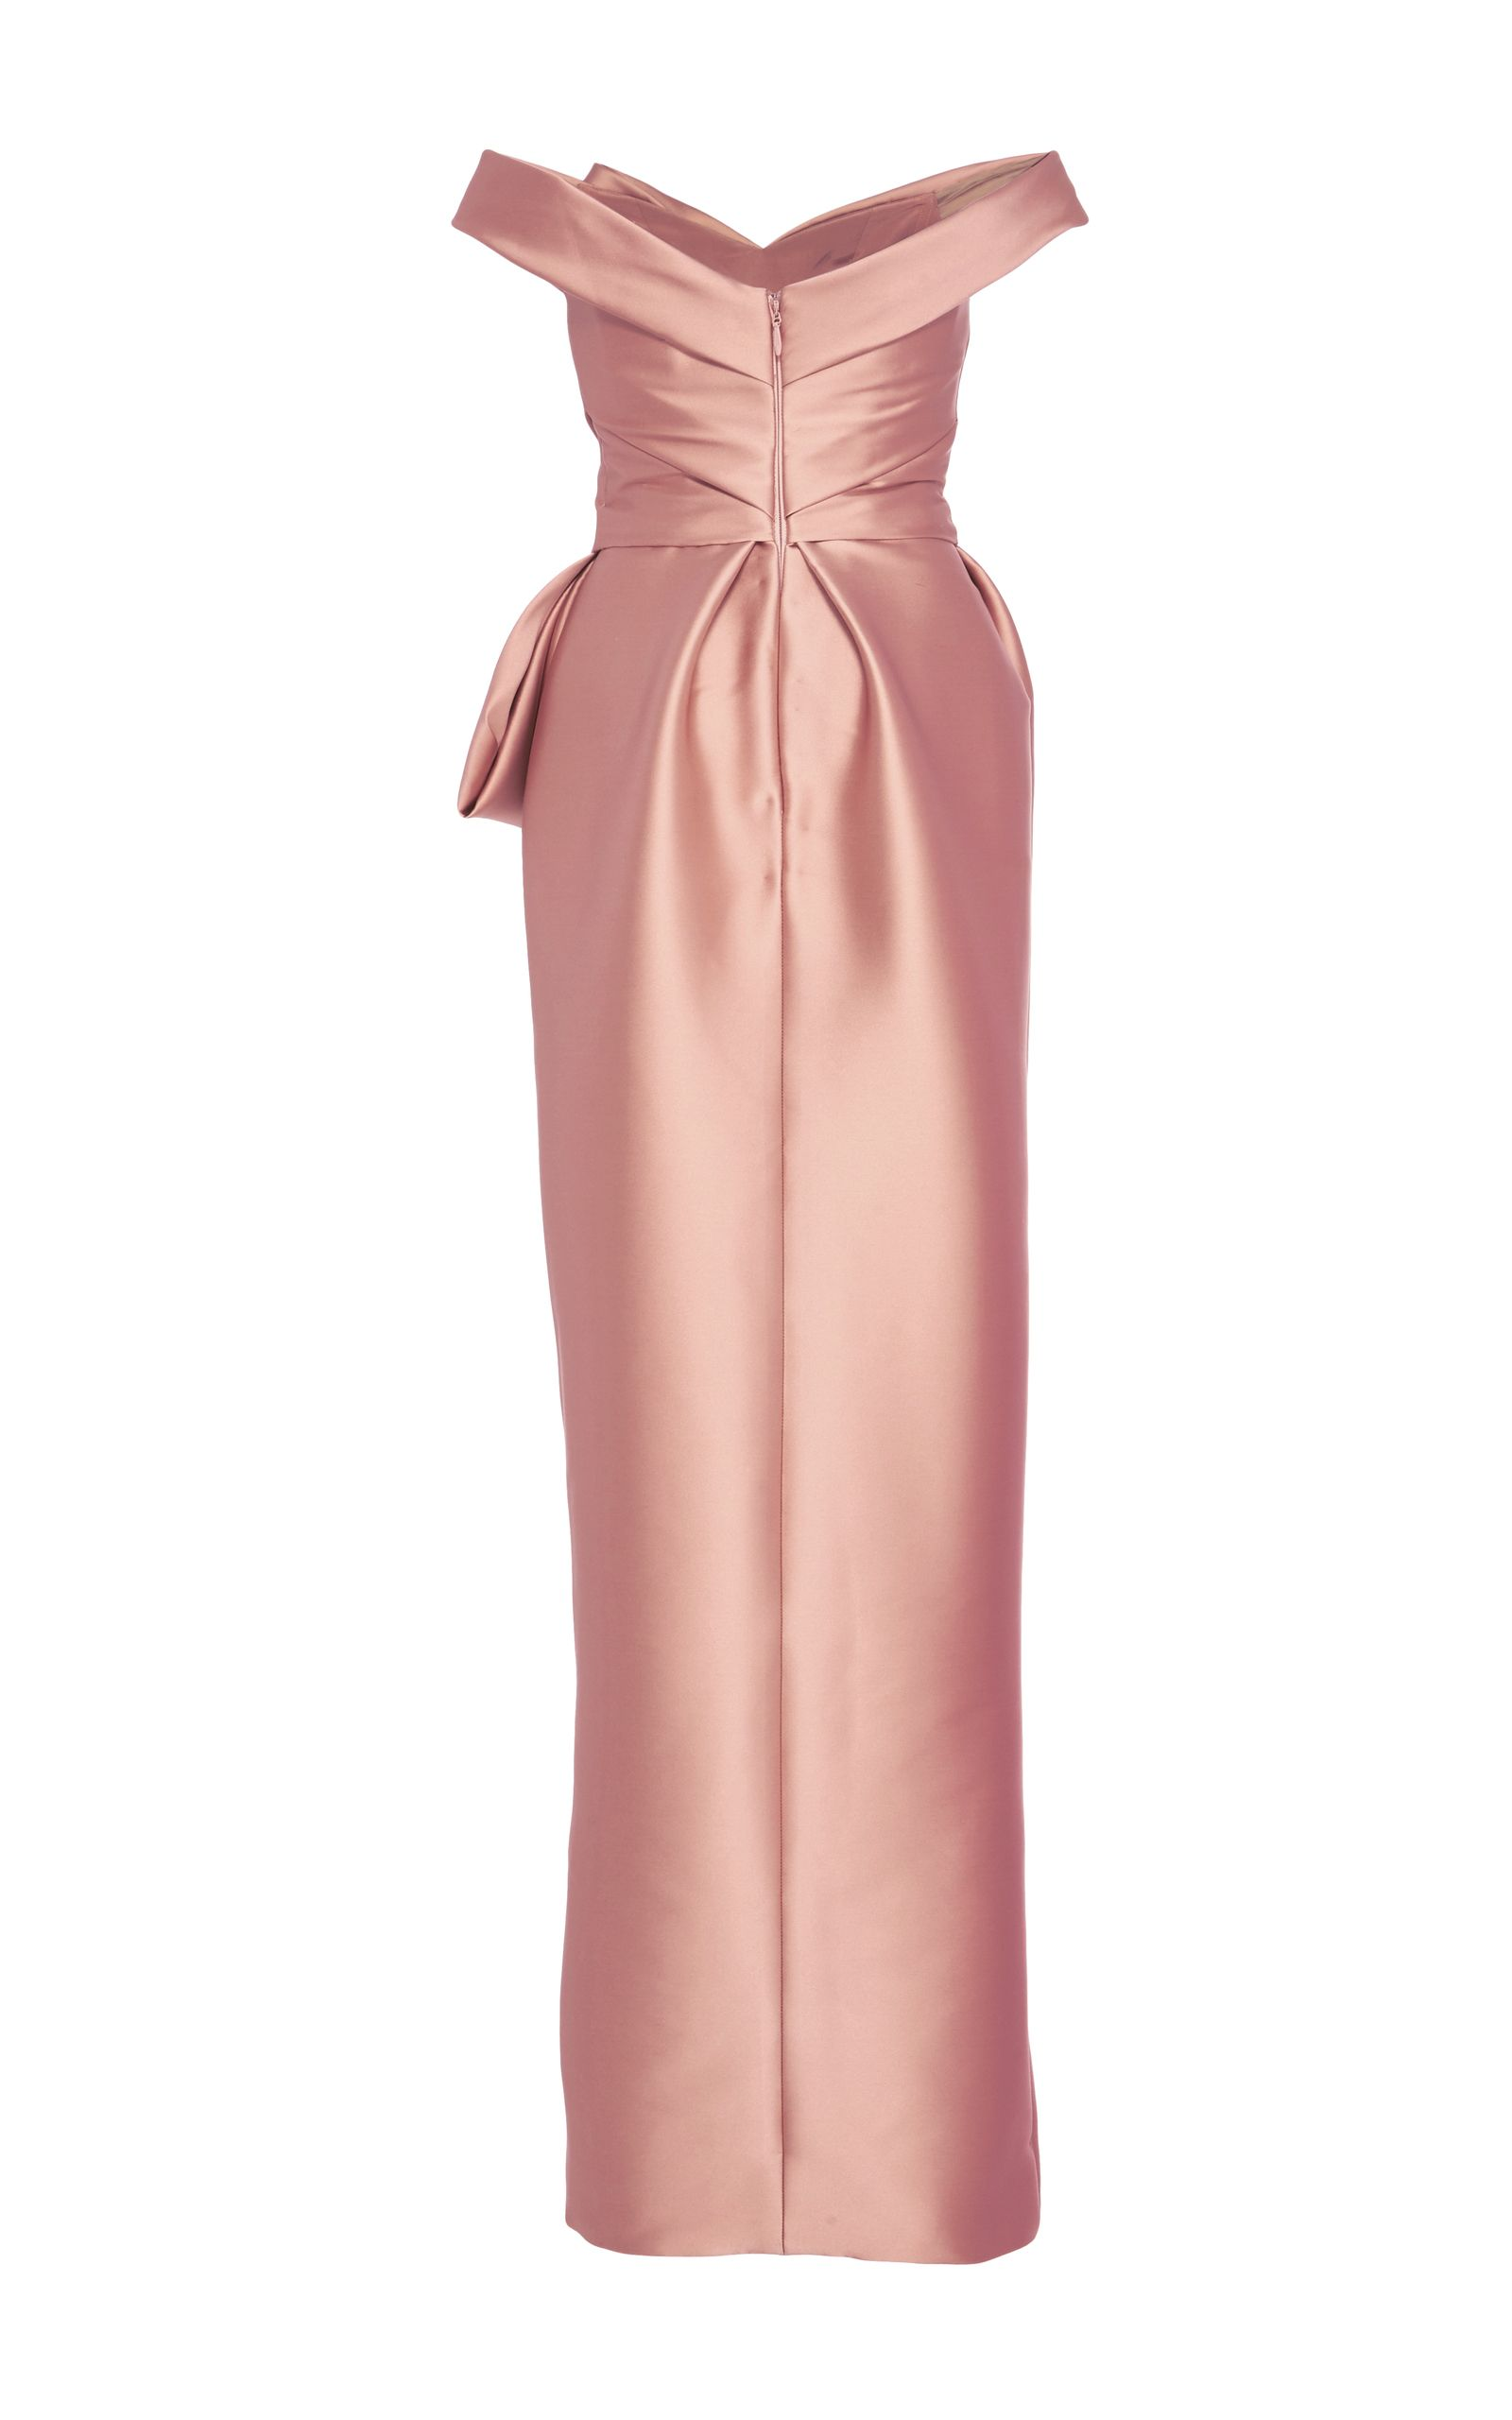 Off-the-shoulder Satin Gown - Pink Monique Lhuillier SPbDjGW